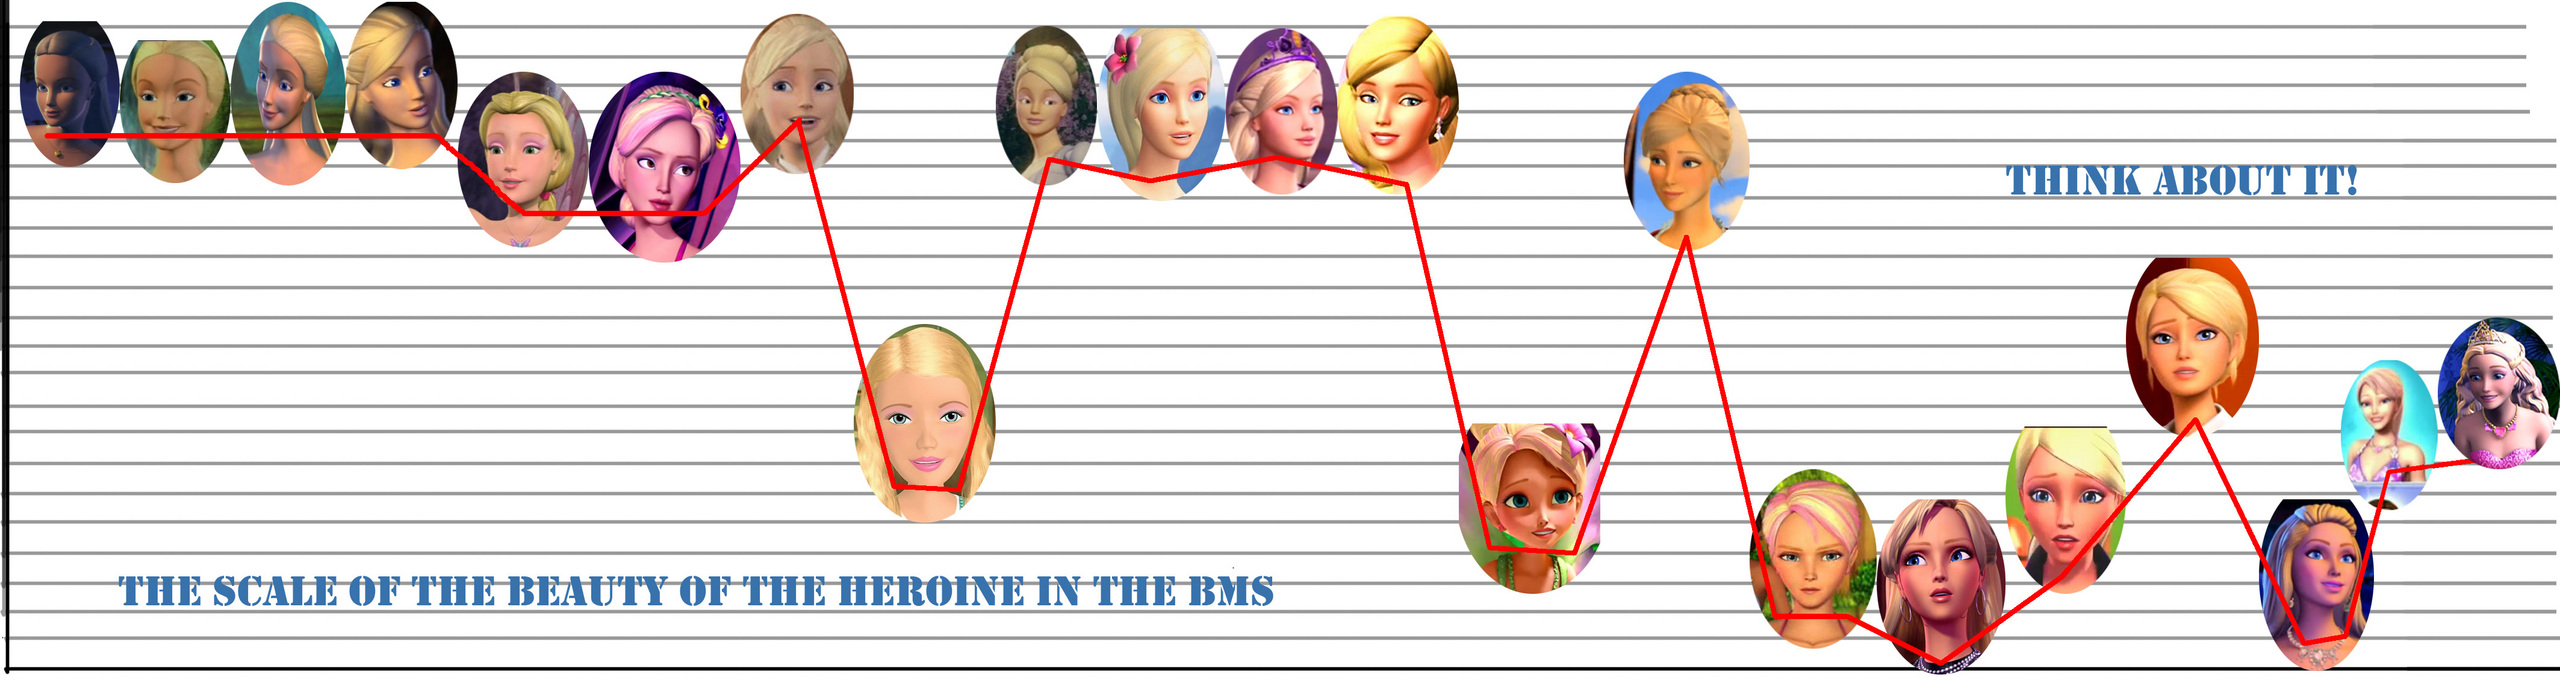 The scale of the beauty of the heroine in the BM